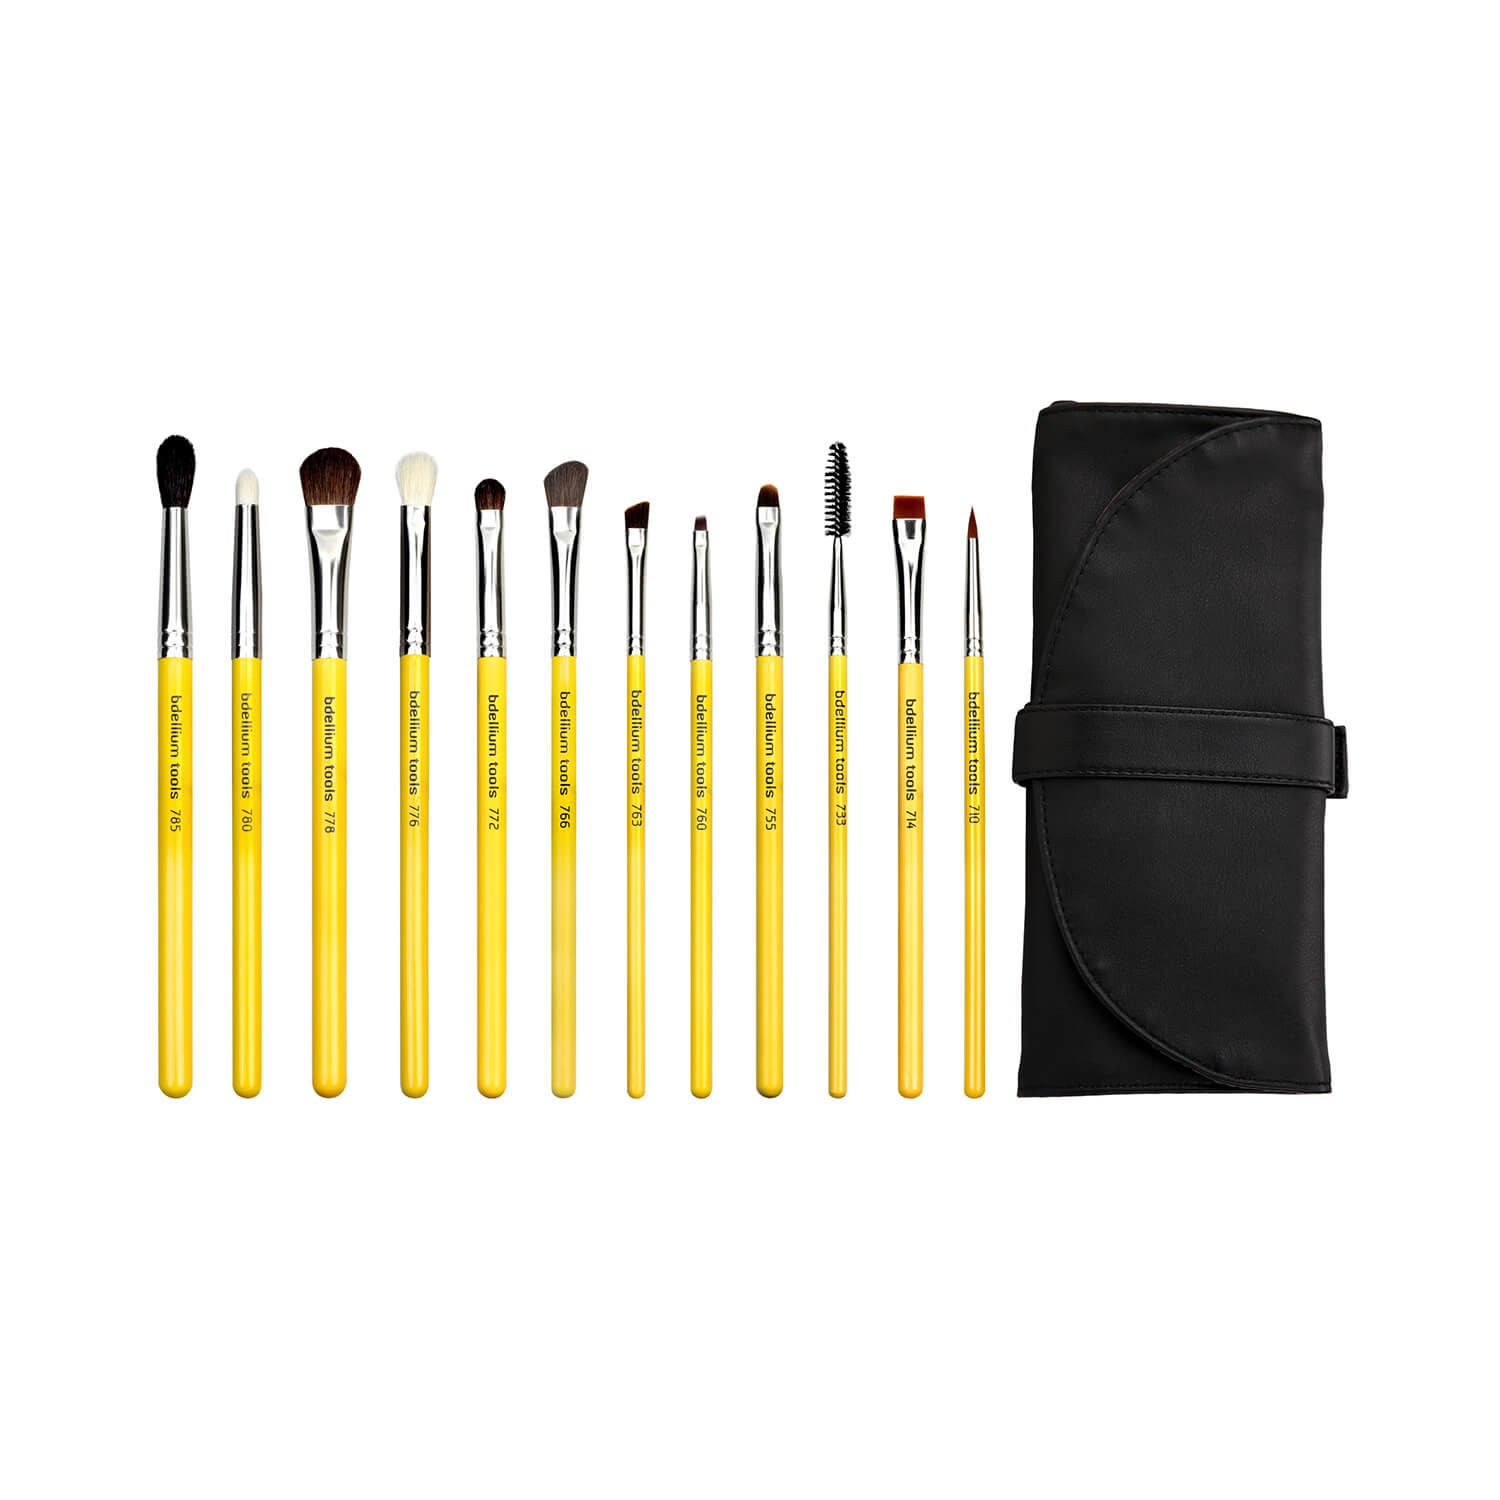 BDellium Tools Studio Eyes 12pc. Brush Set with Roll-up Pouch